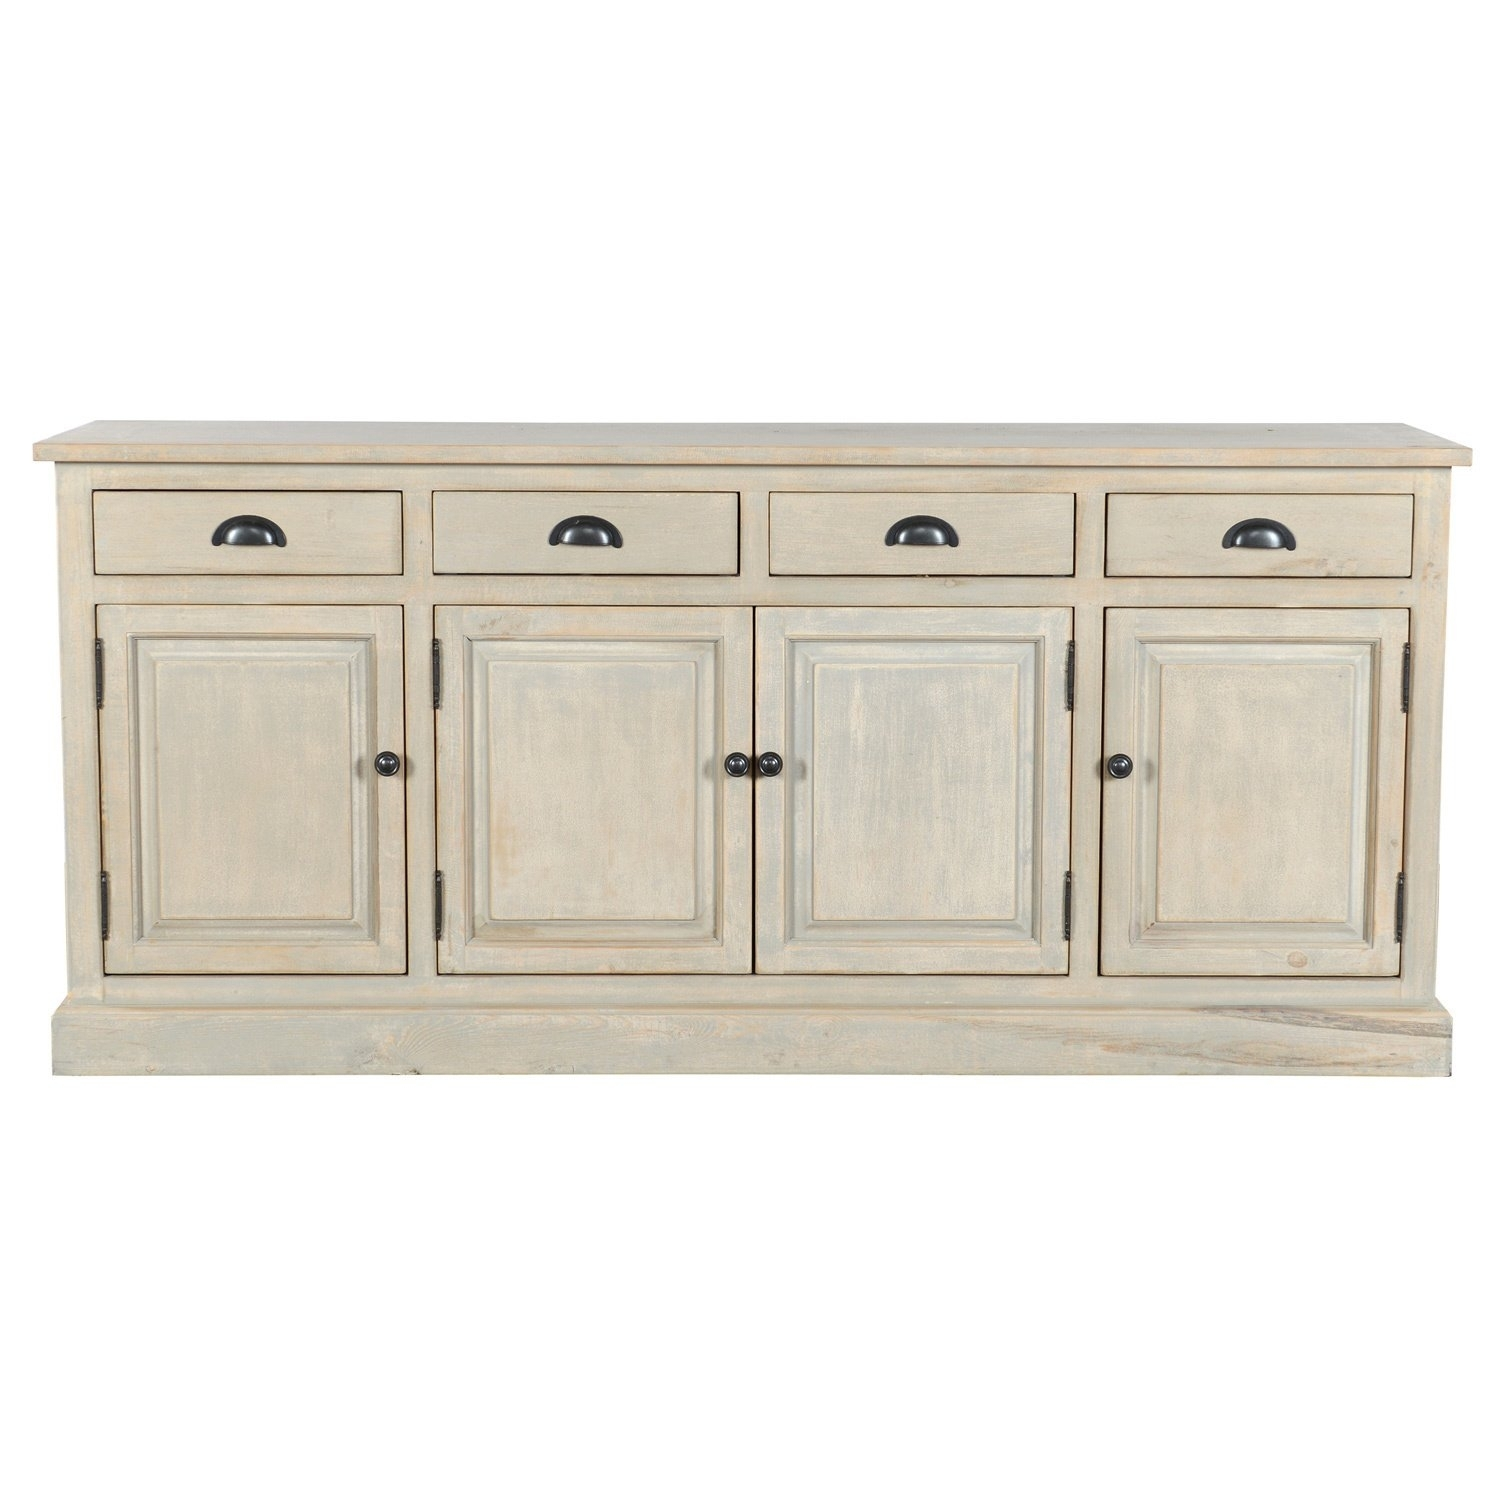 Shop Wilson Reclaimed Wood 79 Inch Sideboardkosas Home – Free In Most Recently Released Reclaimed Pine Turquoise 4 Door Sideboards (View 13 of 20)